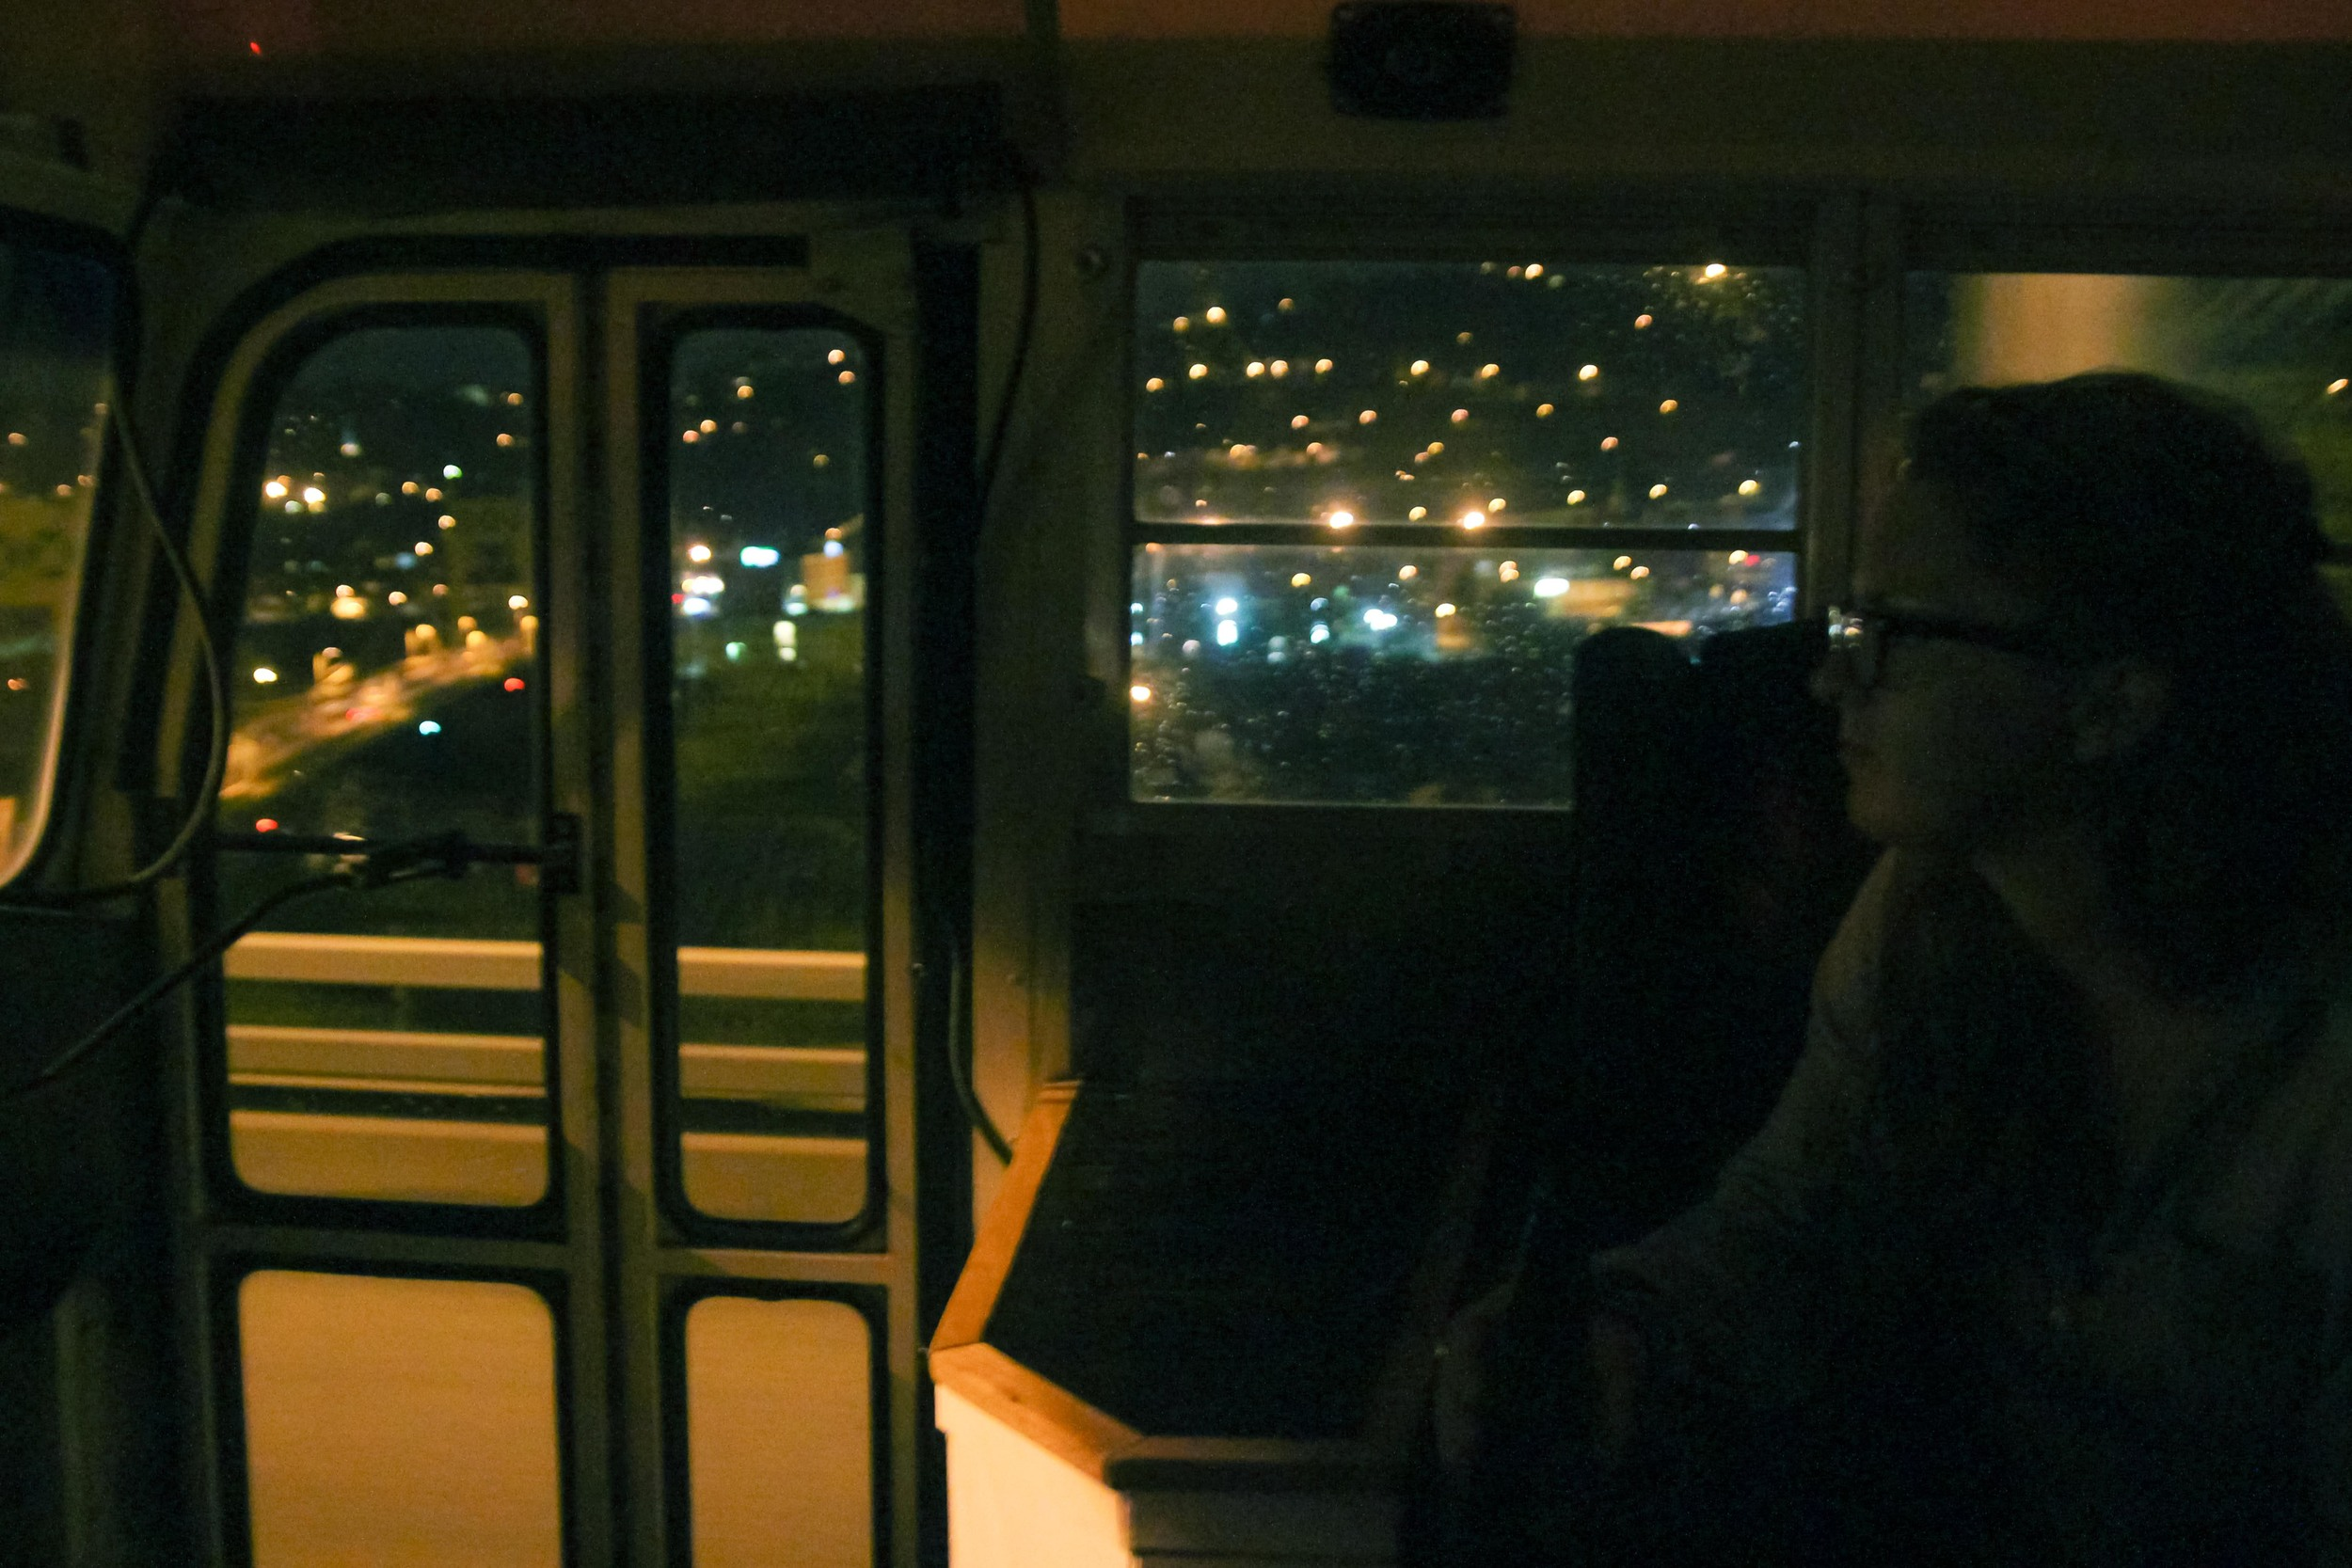 And all at once, we were infinite. Entering Pittsburgh at night.